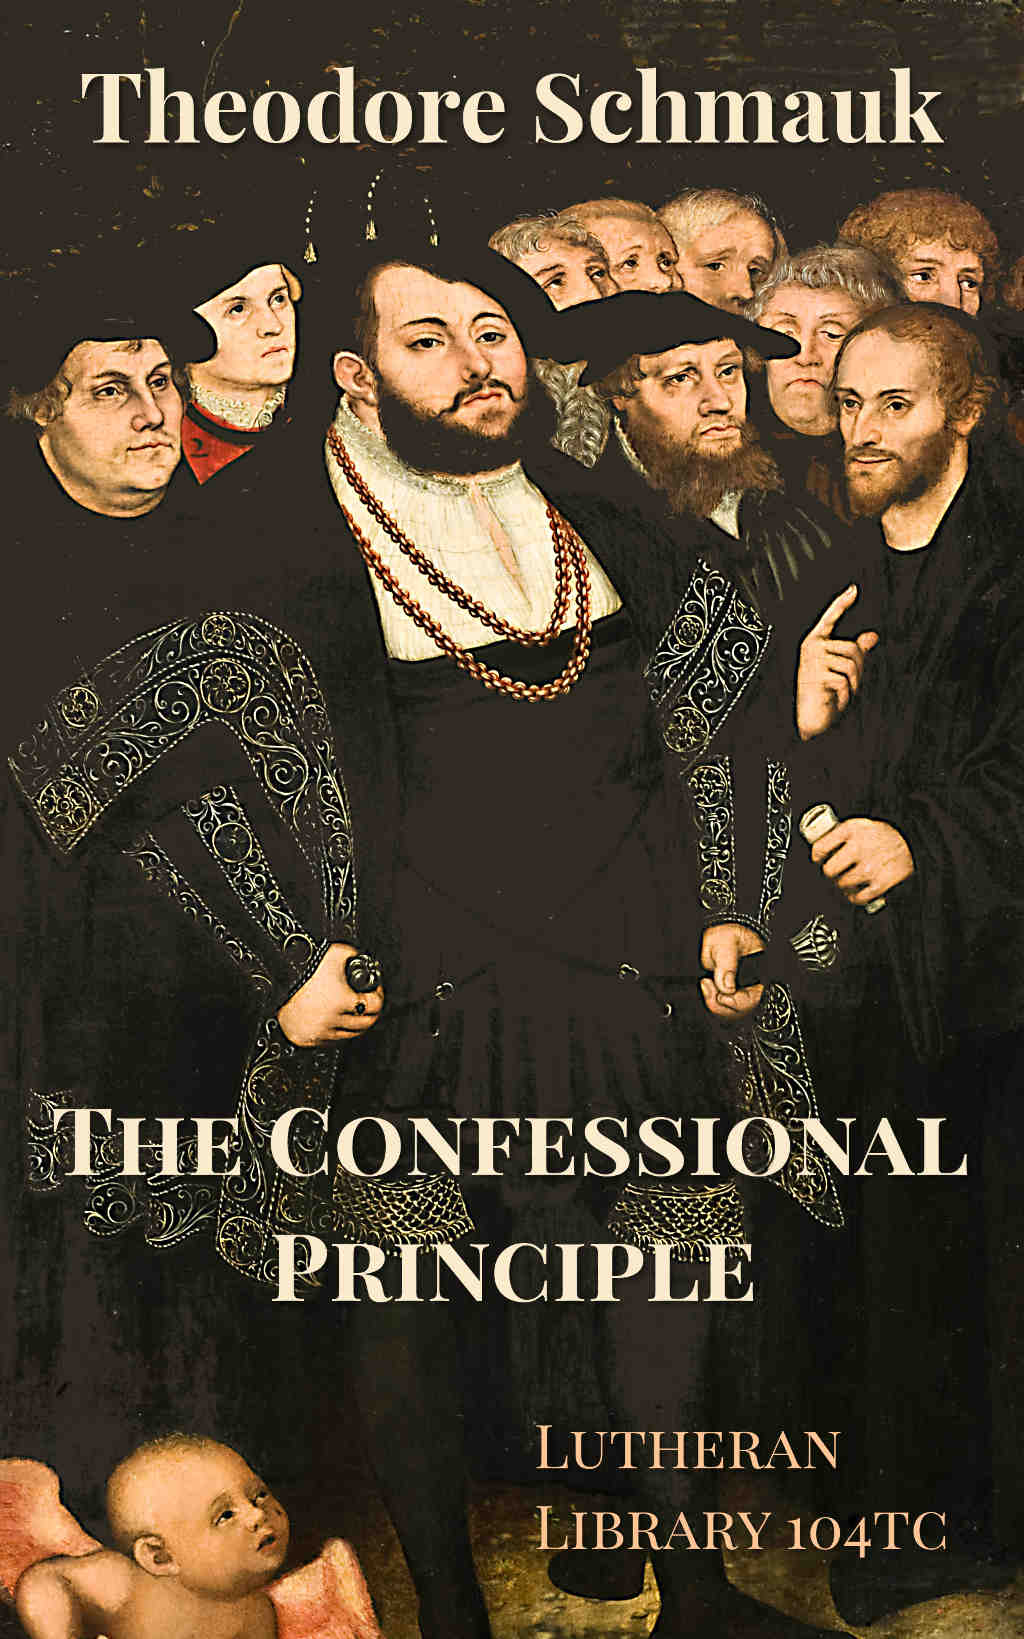 The Confessional Principle and The Confessions of The Lutheran Church As Embodying The Evangelical Confession of The Christian Church by Theodore E. Schmauk